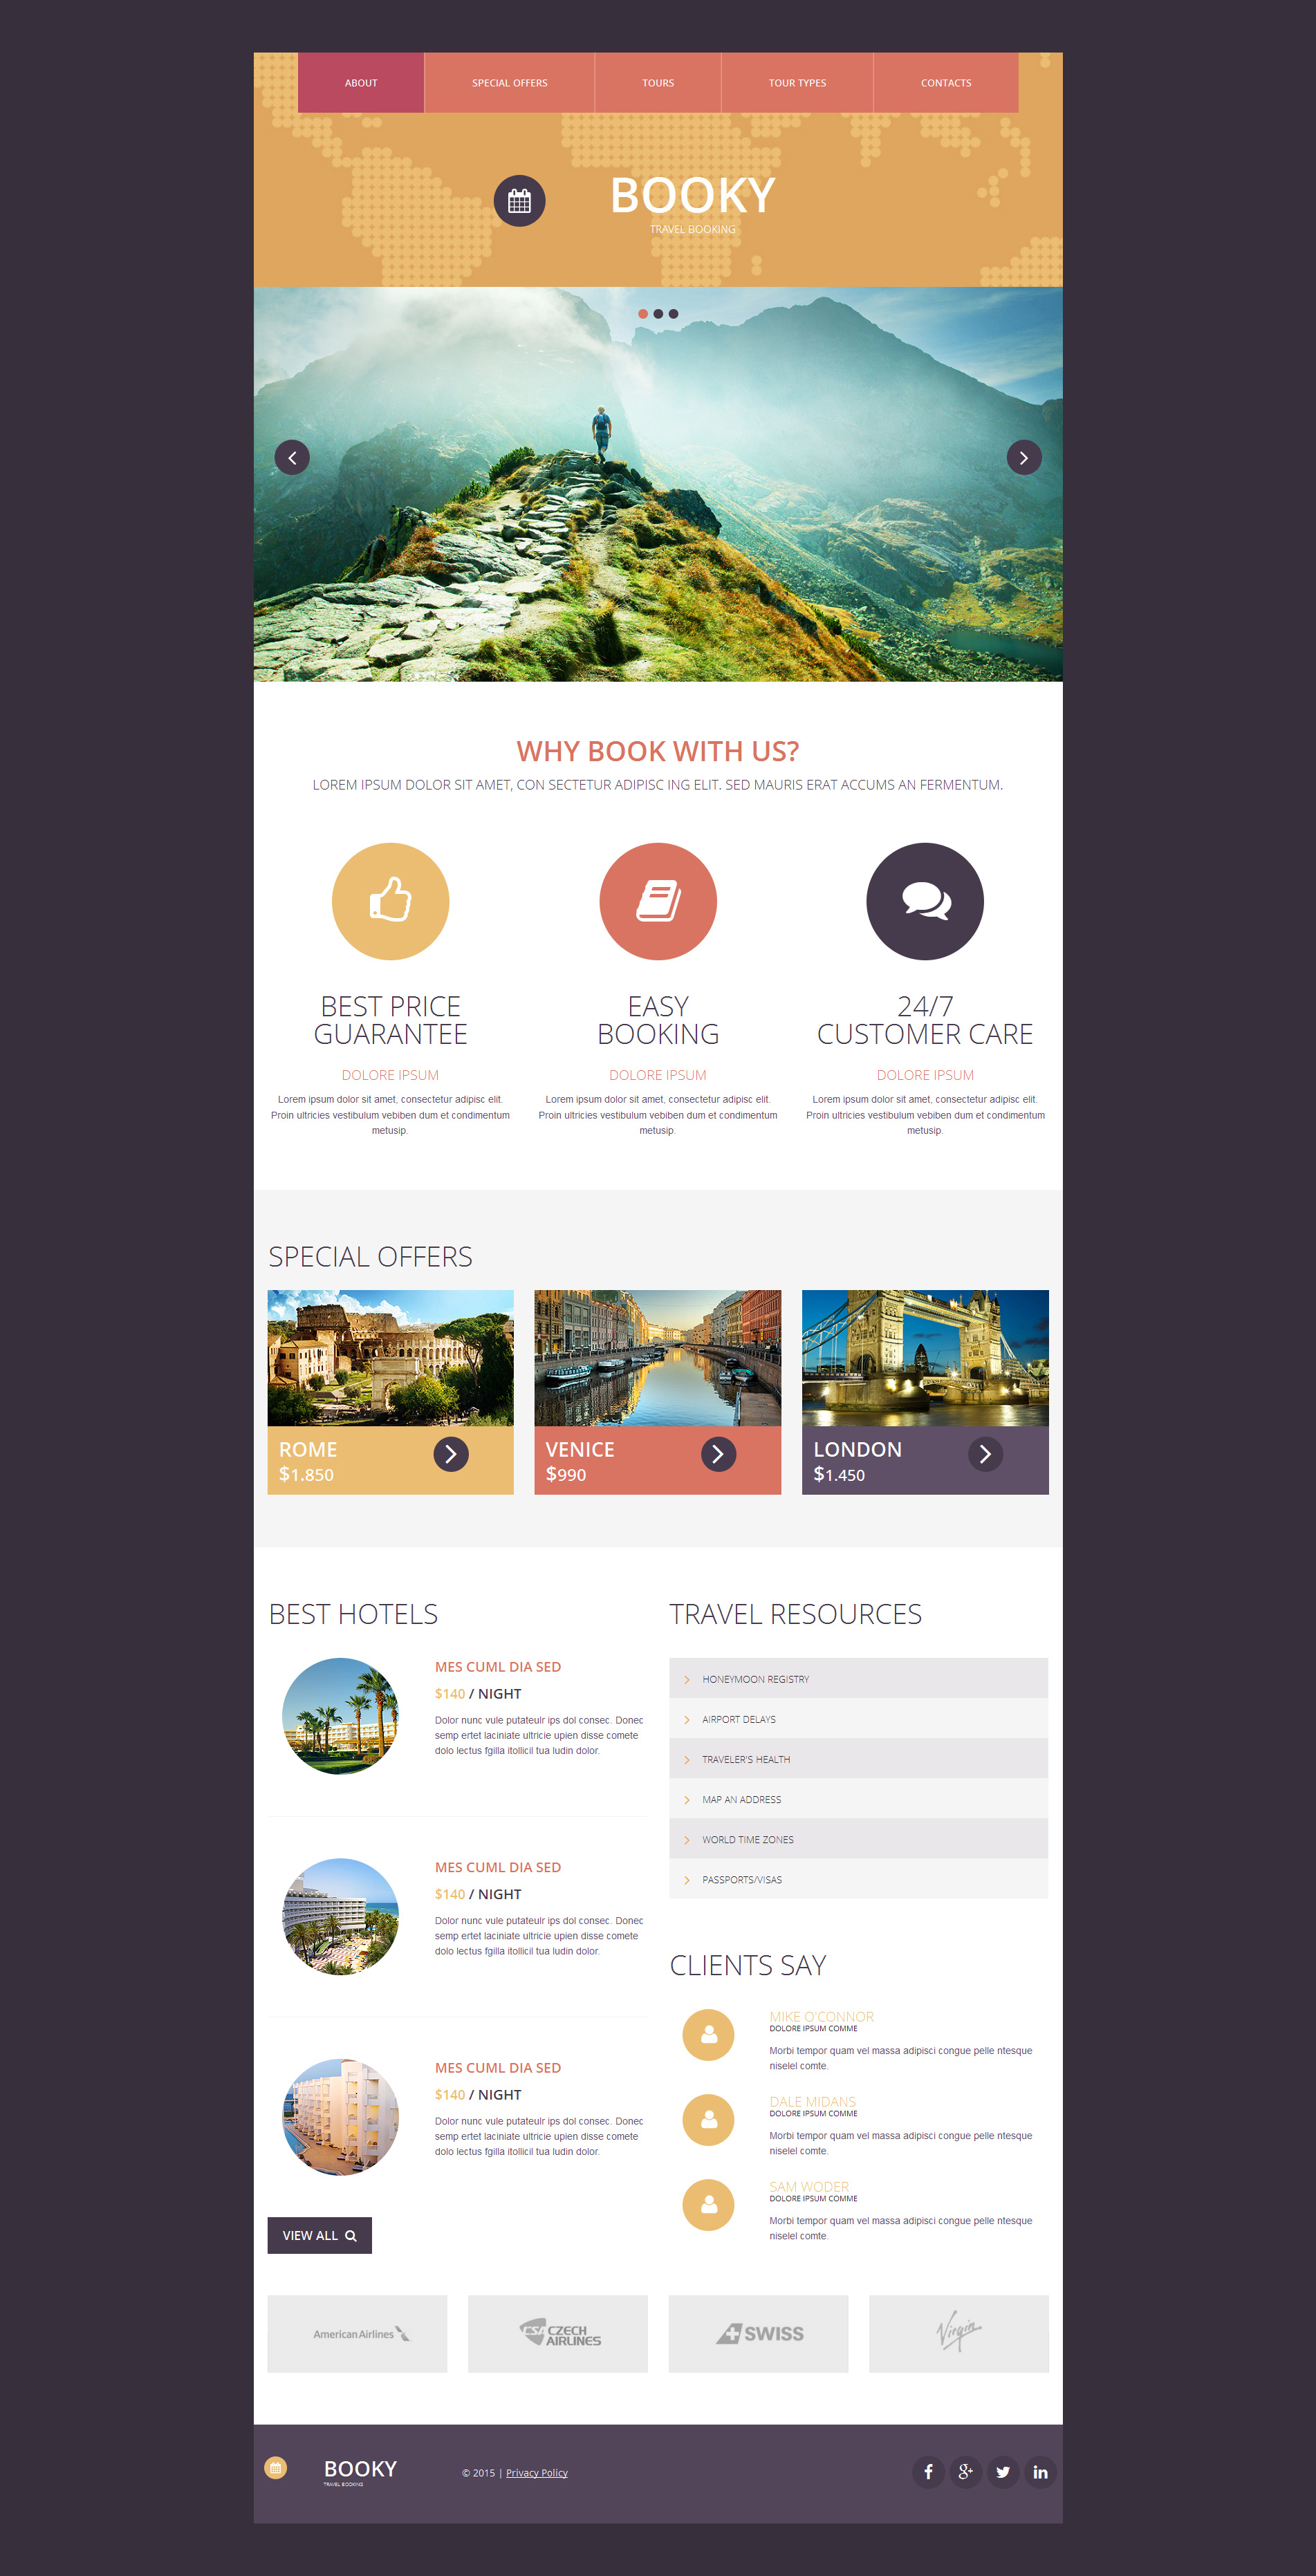 The Booky Travel Agency Moto CMS 3 Templates Design 53223, one of the best Moto CMS 3 templates of its kind (travel, most popular), also known as booky travel agency Moto CMS 3 template, compass Moto CMS 3 template, tour country Moto CMS 3 template, resort Moto CMS 3 template, spa Moto CMS 3 template, flight hotel Moto CMS 3 template, car Moto CMS 3 template, rental Moto CMS 3 template, cruise Moto CMS 3 template, sights Moto CMS 3 template, reservation Moto CMS 3 template, location Moto CMS 3 template, authorization Moto CMS 3 template, ticket Moto CMS 3 template, guide Moto CMS 3 template, beach Moto CMS 3 template, sea Moto CMS 3 template, relaxation Moto CMS 3 template, recreation Moto CMS 3 template, impression Moto CMS 3 template, air Moto CMS 3 template, liner Moto CMS 3 template, traveling Moto CMS 3 template, apartment Moto CMS 3 template, vacation Moto CMS 3 template, rest Moto CMS 3 template, comfort Moto CMS 3 template, destination Moto CMS 3 template, explorat and related with booky travel agency, compass, tour country, resort, spa, flight hotel, car, rental, cruise, sights, reservation, location, authorization, ticket, guide, beach, sea, relaxation, recreation, impression, air, liner, traveling, apartment, vacation, rest, comfort, destination, explorat, etc.